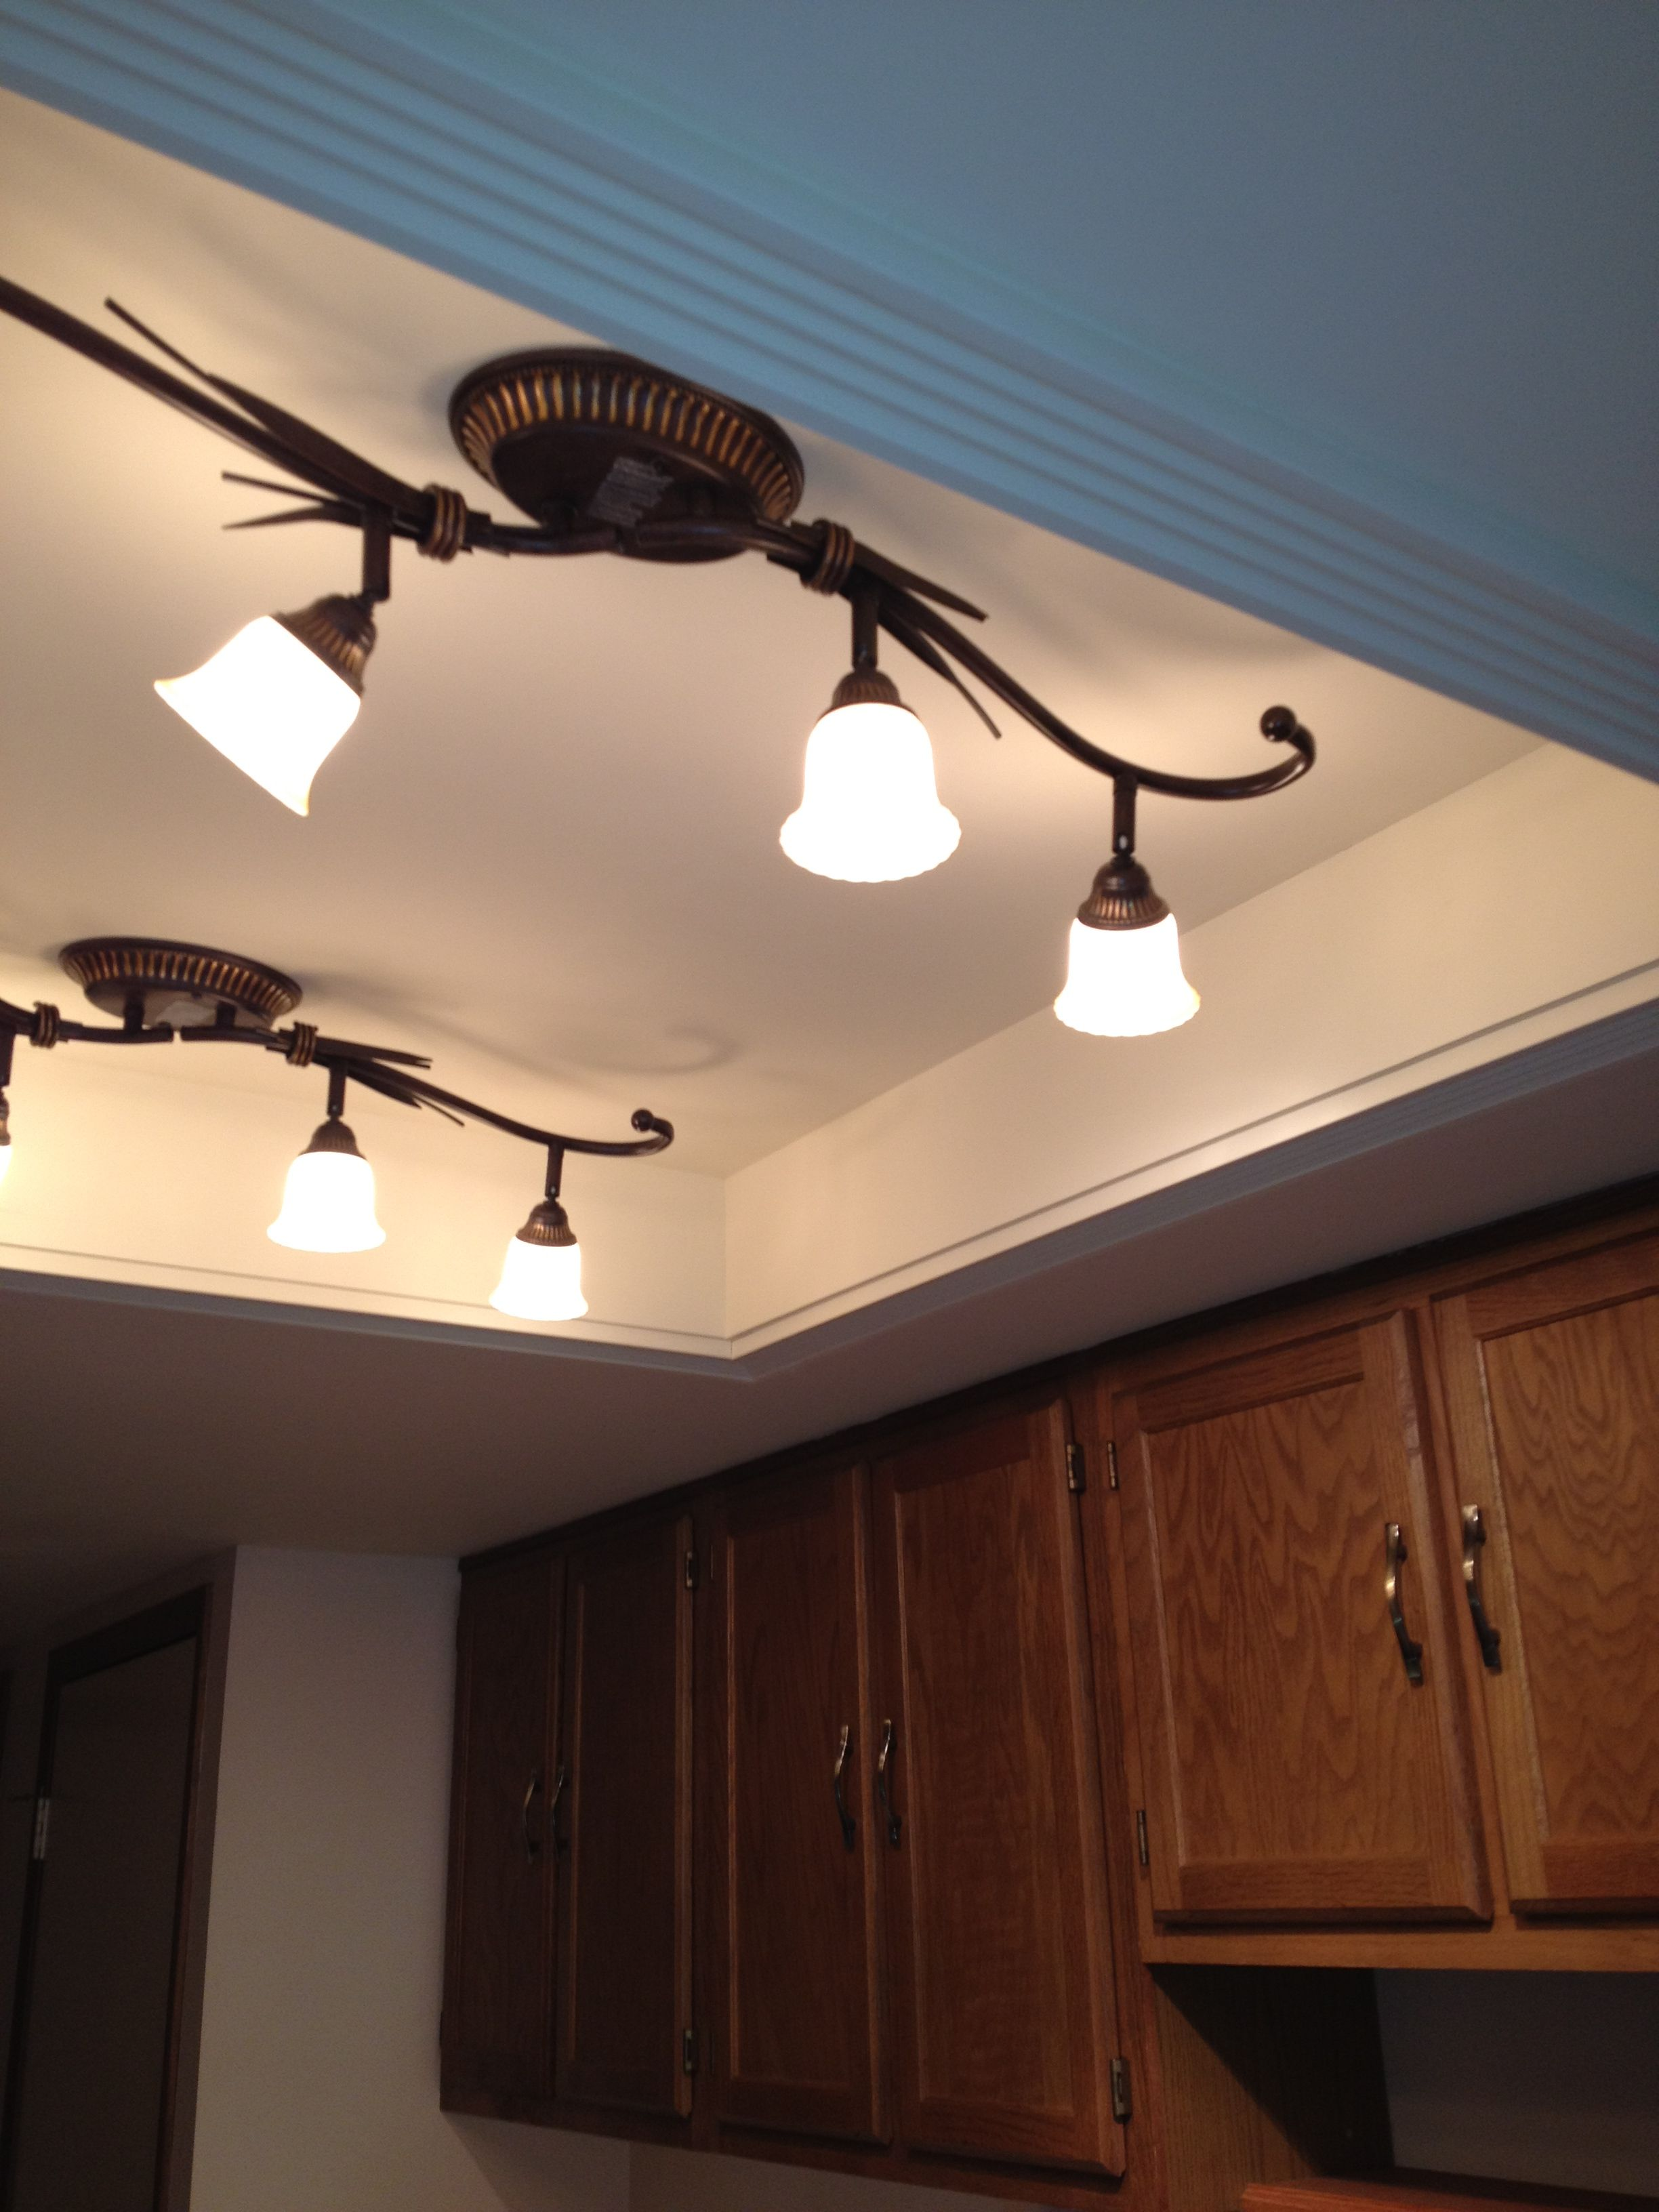 Convert That Ugly Recessed Fluorescent Ceiling Lighting In Your